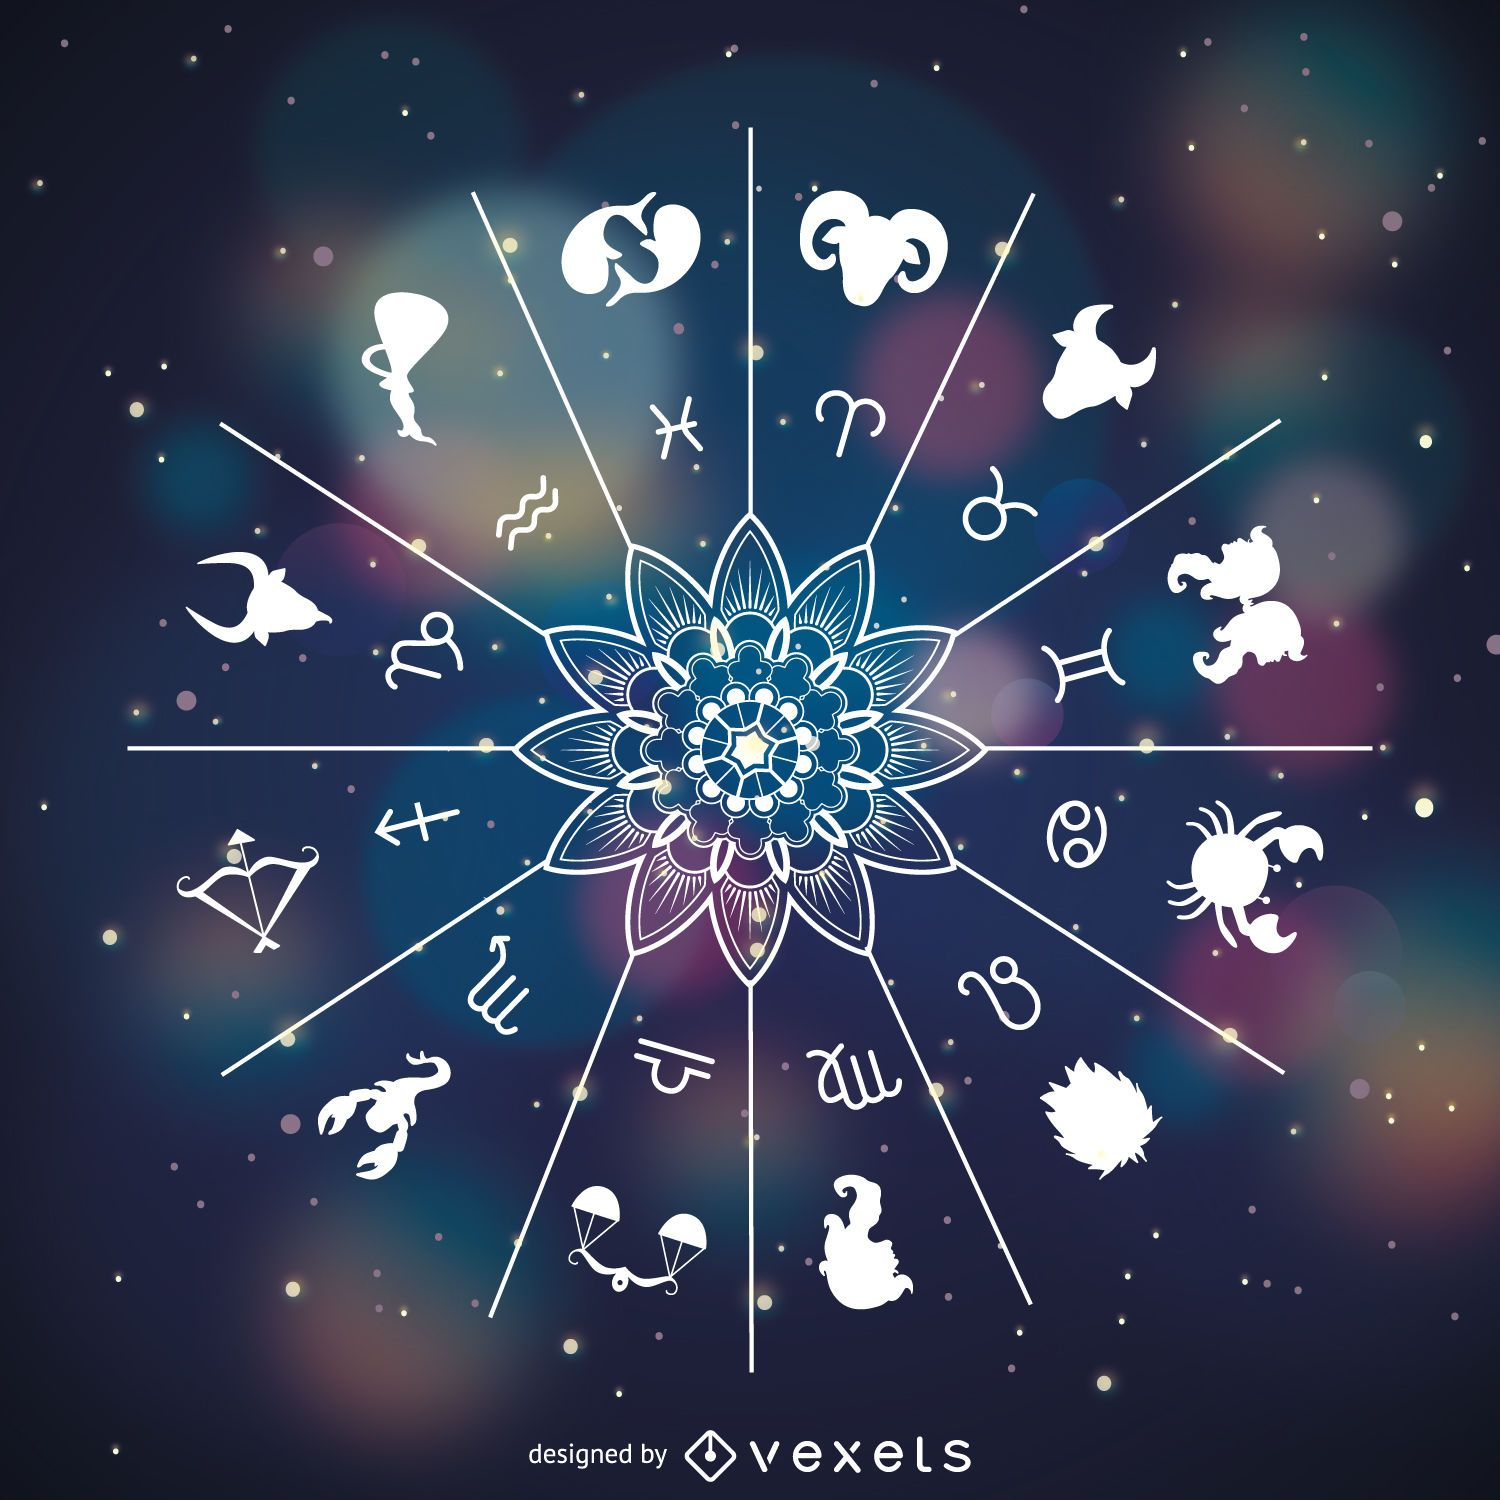 Zodiac signs symbols drawing - Vector download